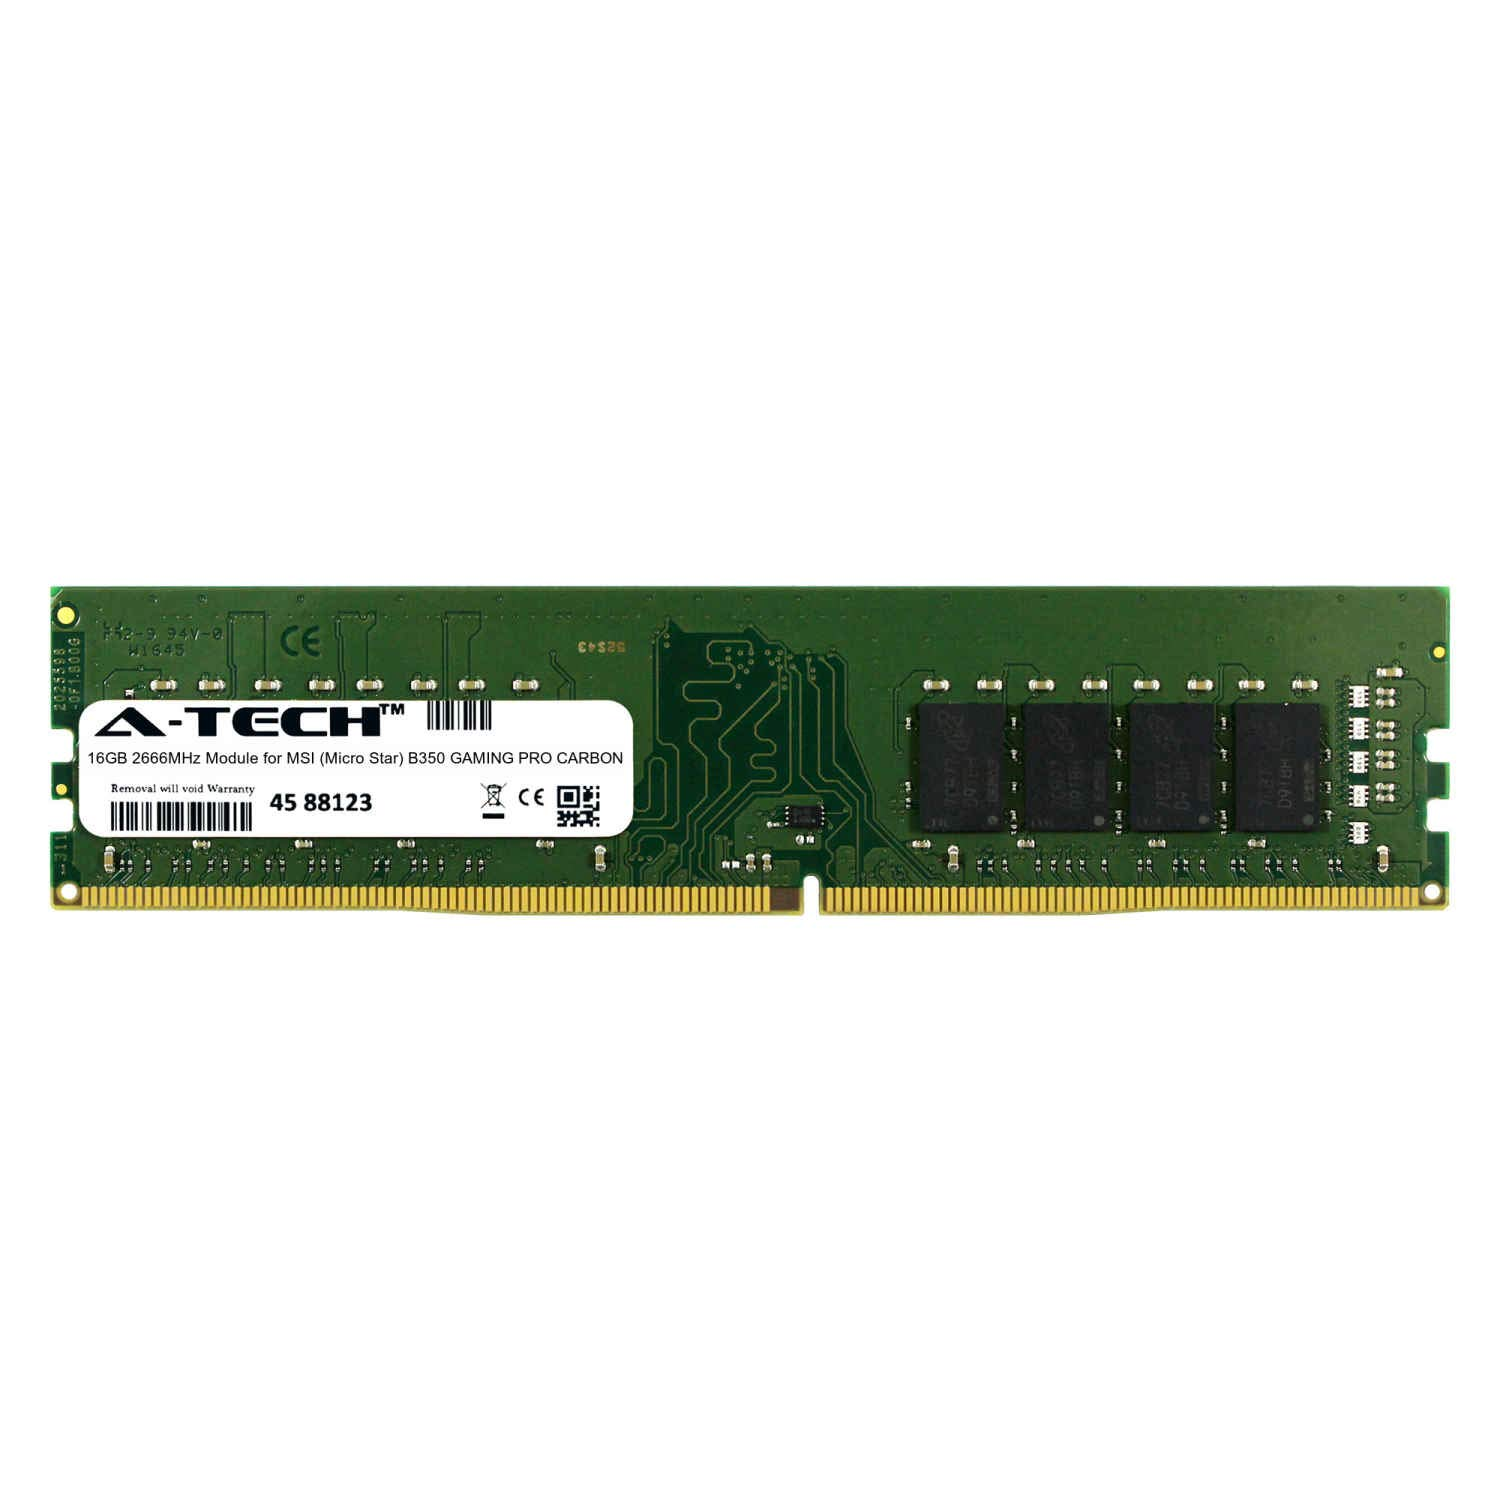 A-Tech 16GB Module for MSI (Micro Star) B350 Gaming PRO Carbon Desktop & Workstation Motherboard Compatible DDR4 2666Mhz Memory Ram (ATMS368338A25823X1)